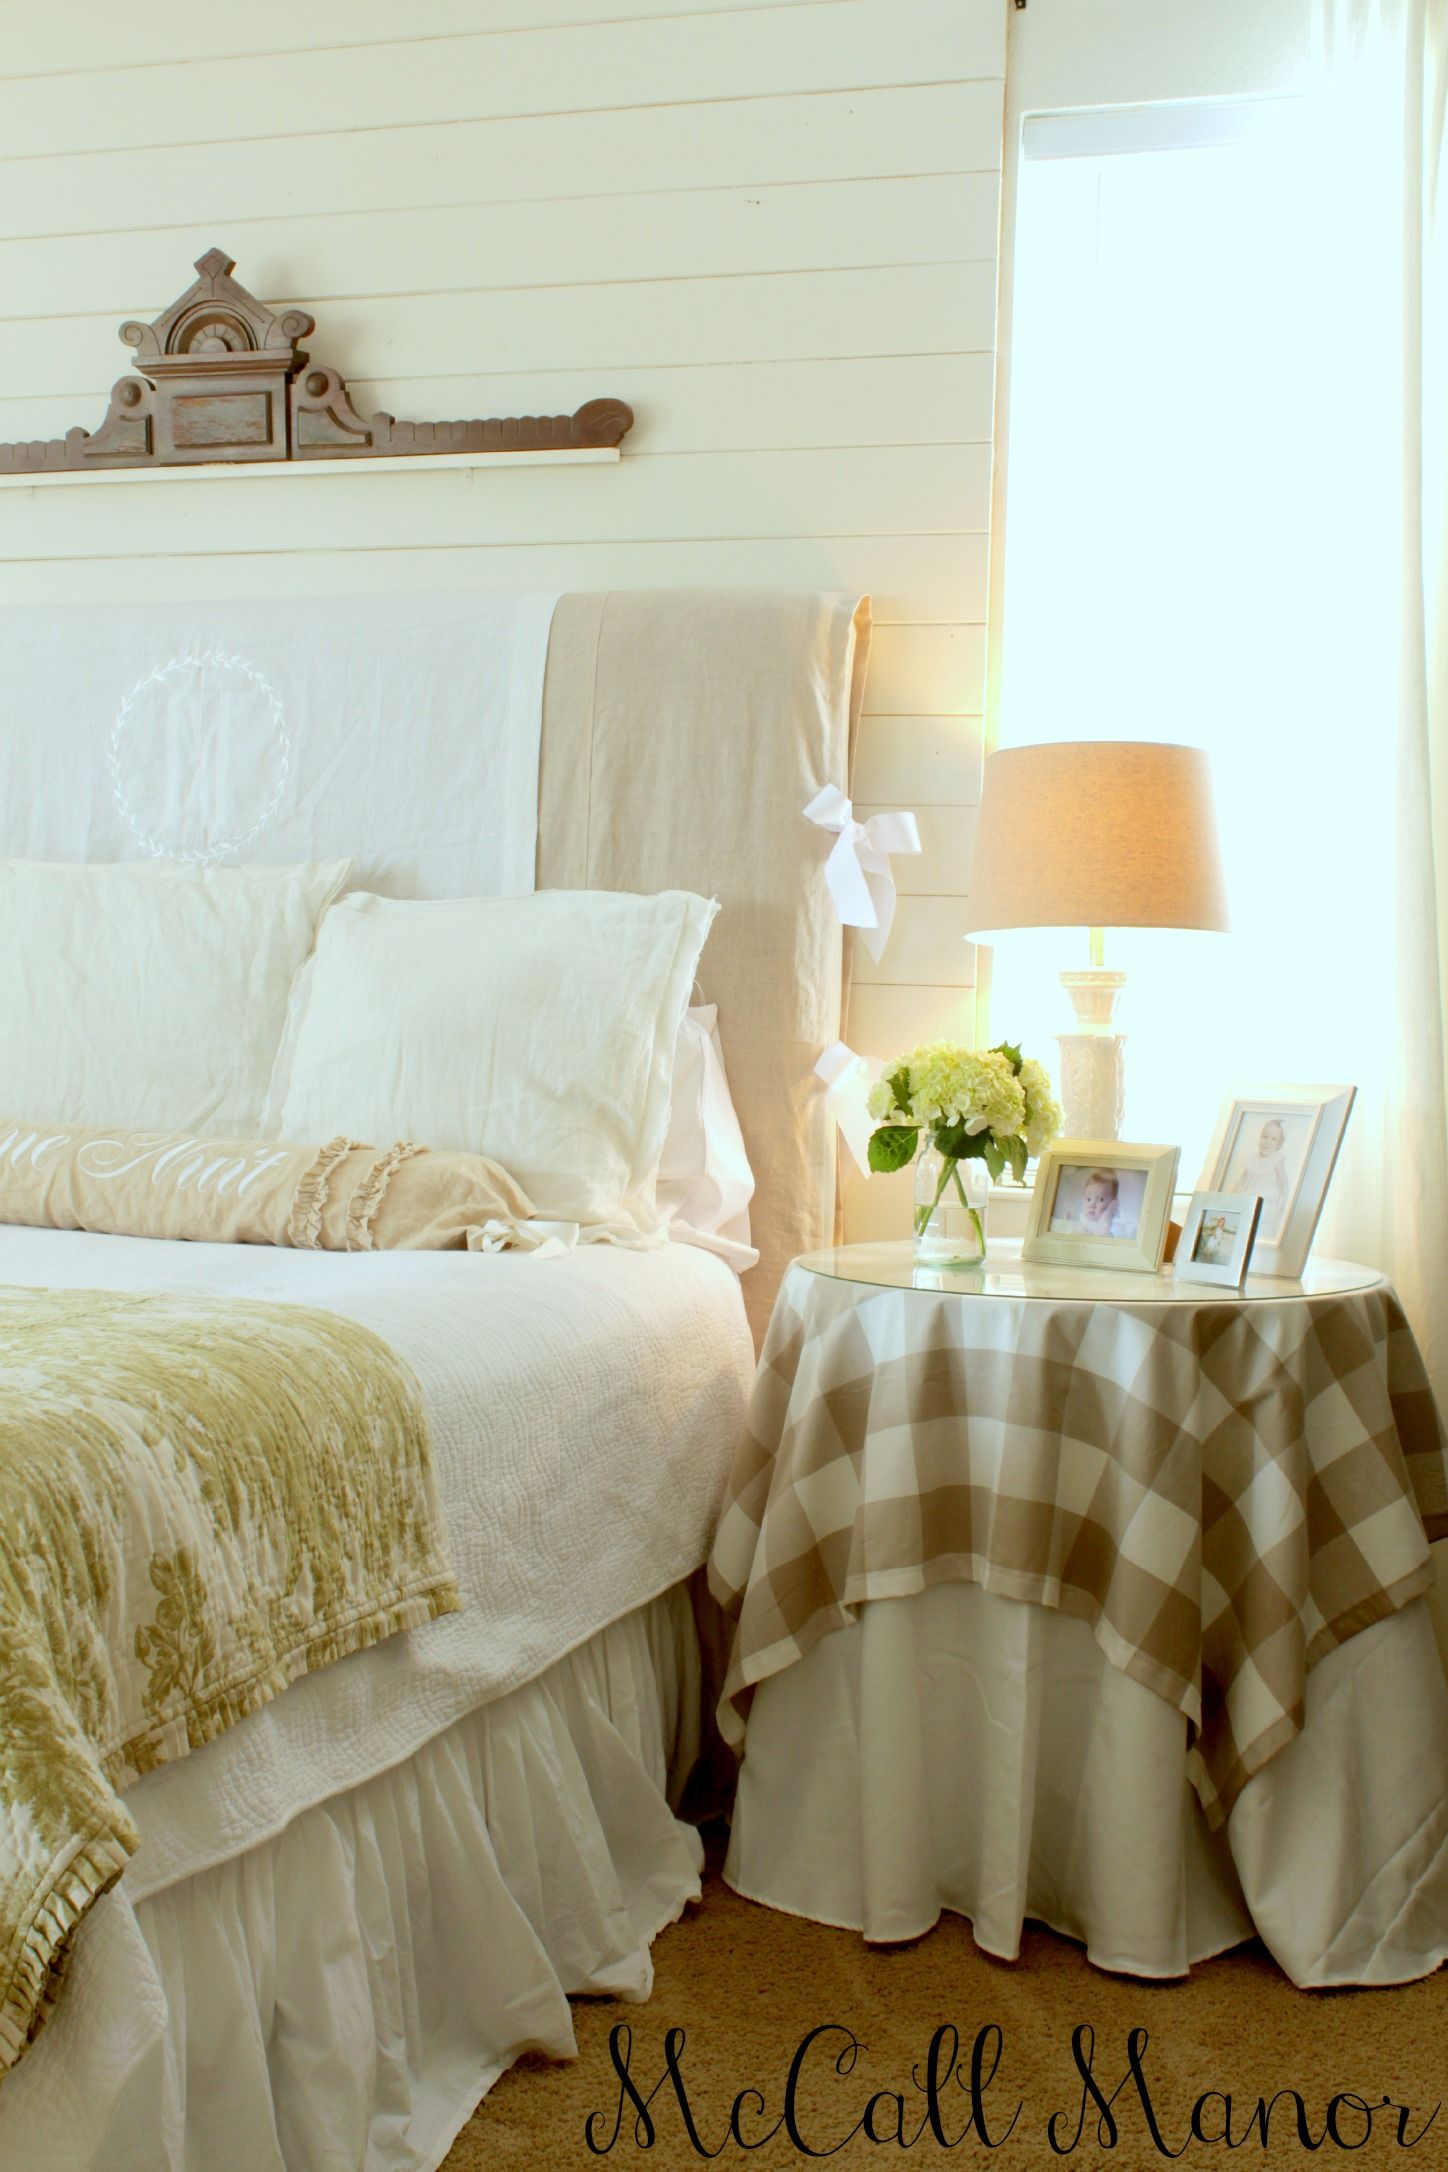 12 Inspirations For Home Improvement With Spanish Home Decorating Ideas: McCall Manor Master Bedroom Makeover